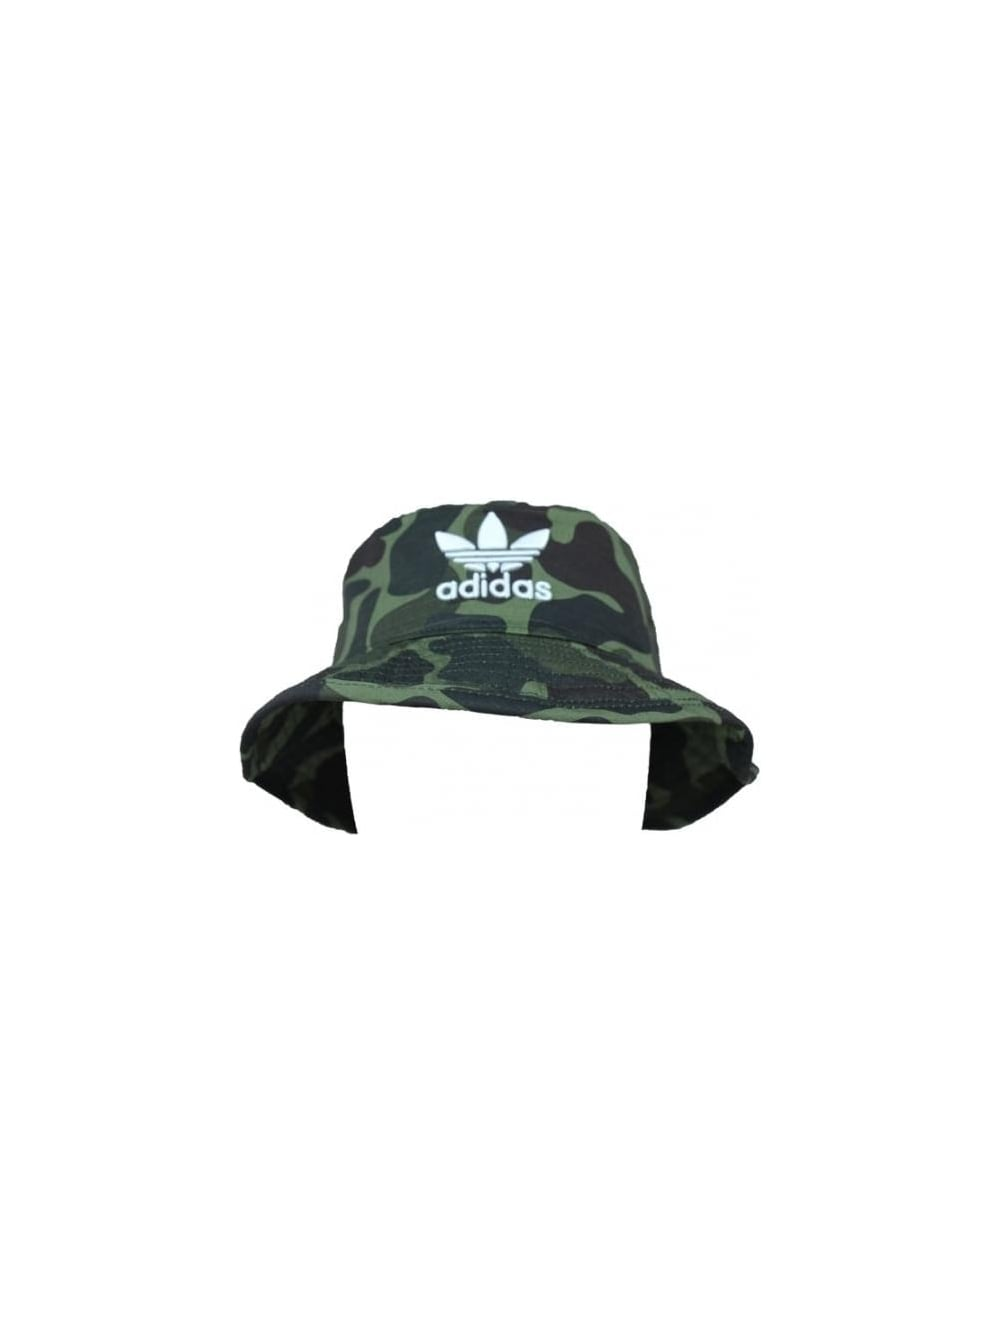 adidas Originals Camo Bucket Hat in Multi - Northern Threads 20533f9639bf